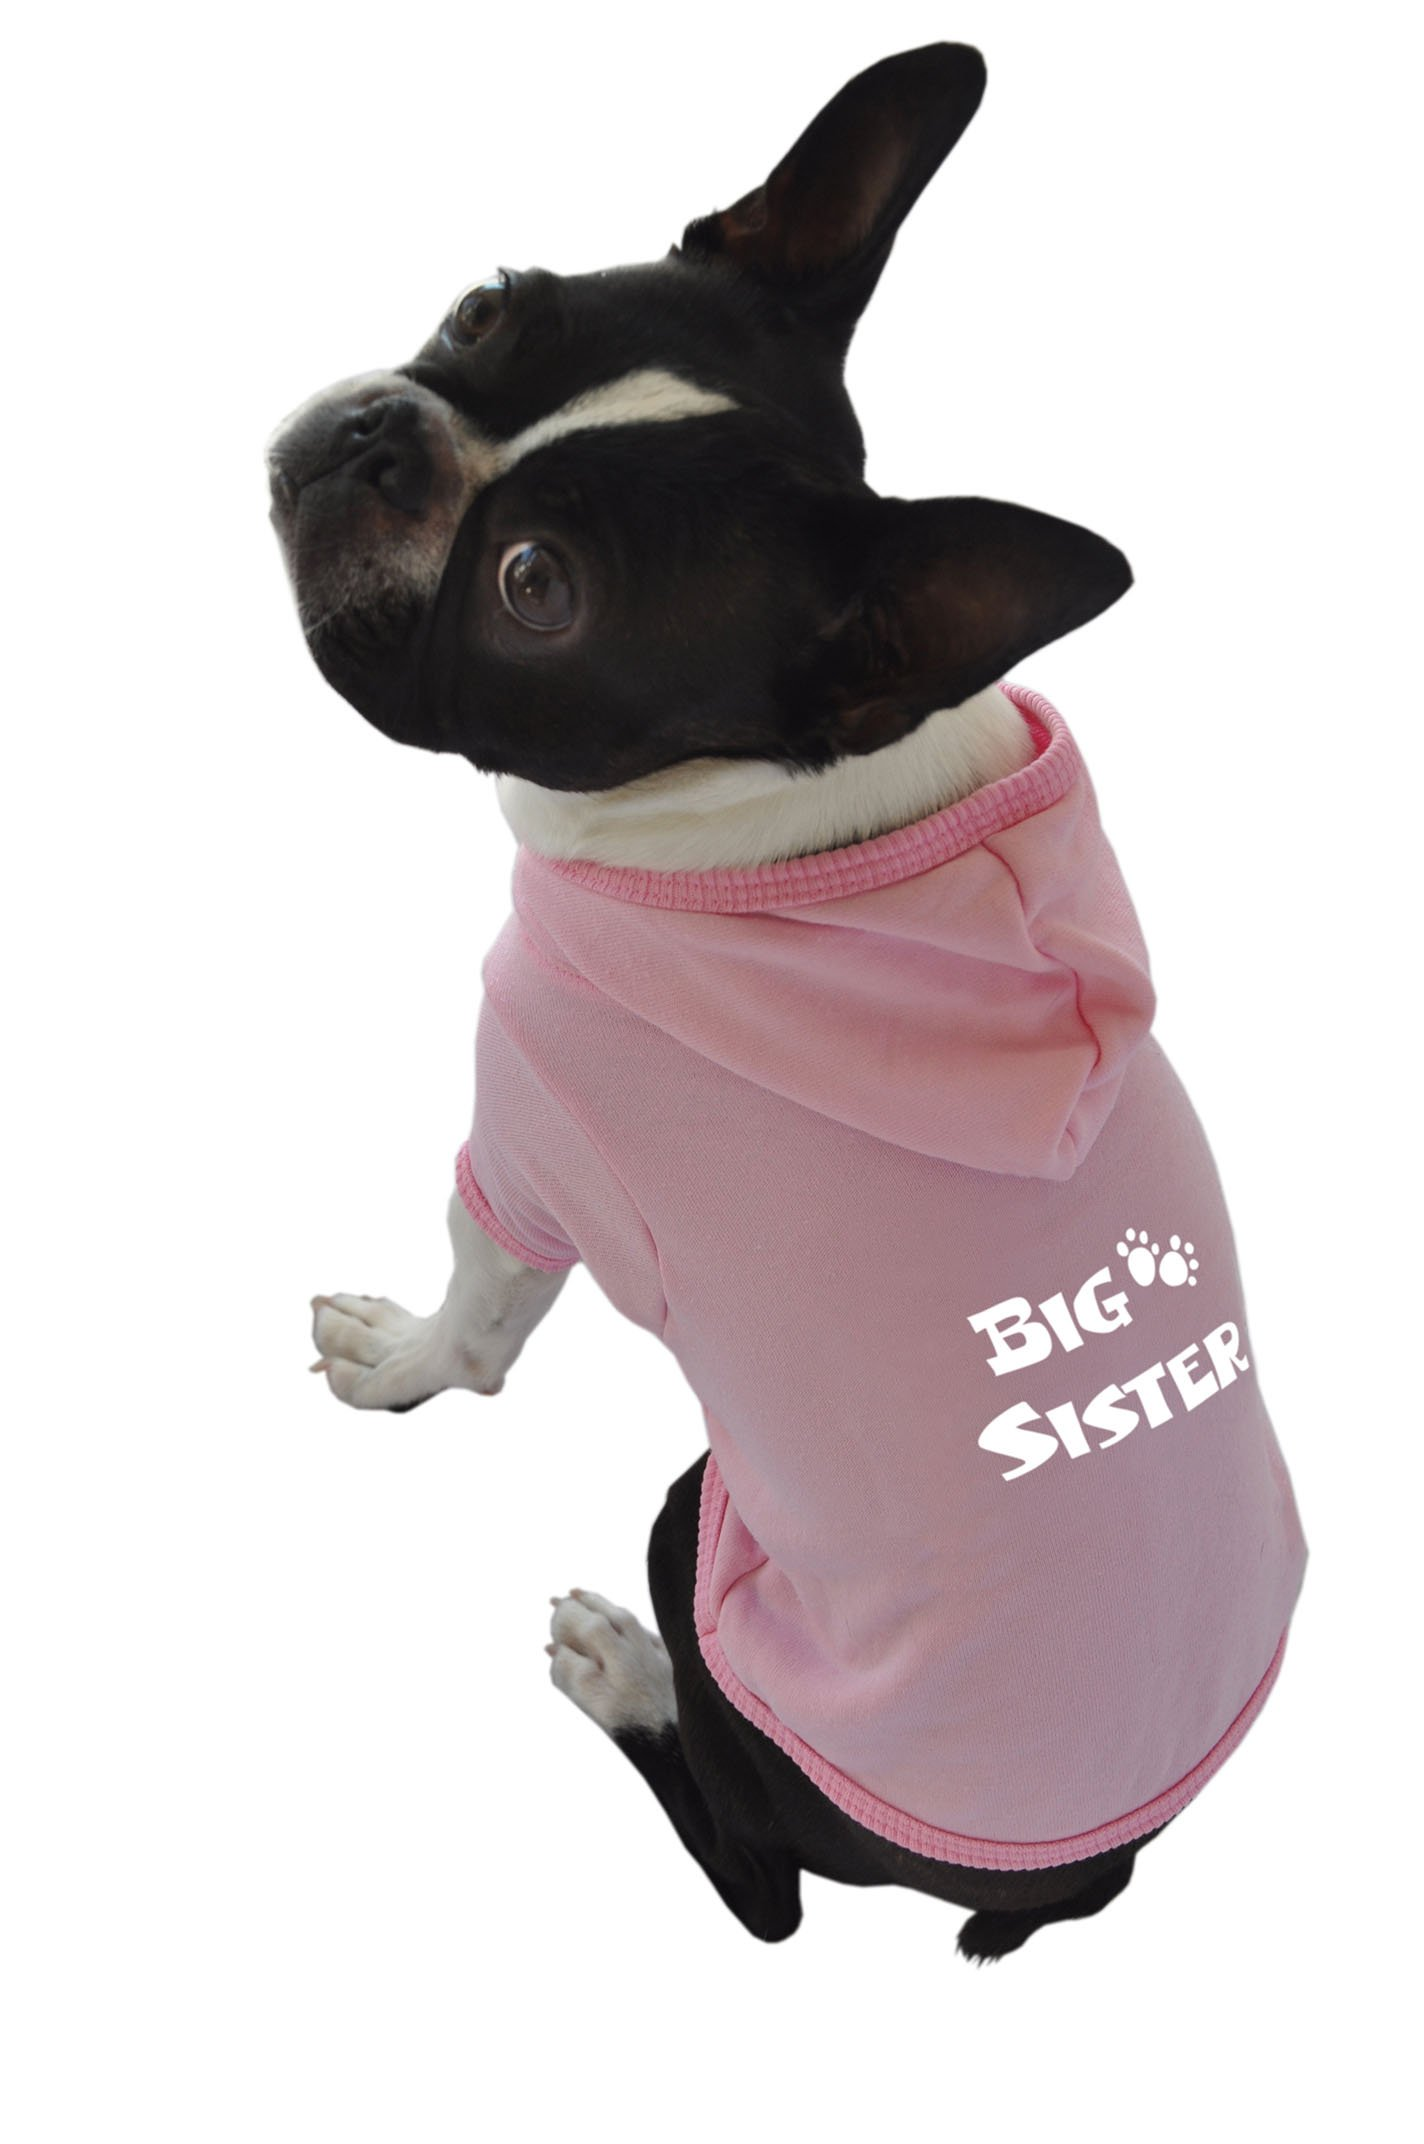 Ruff Ruff and Meow Dog Hoodie, Big Sister, Pink, Extra-Large